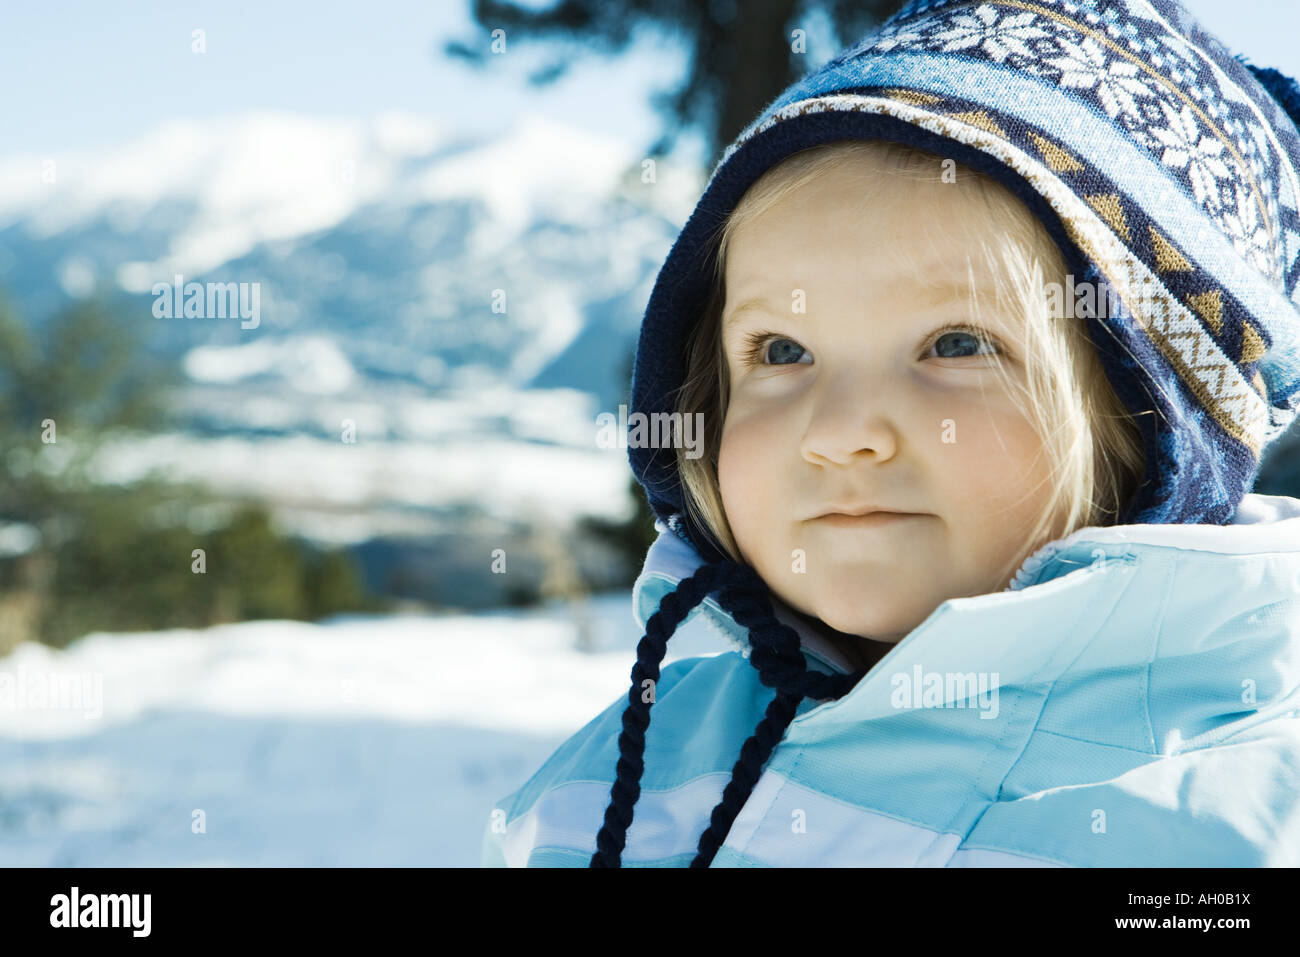 Toddler girl wearing winter clothes in snowy landscape, portrait - Stock Image